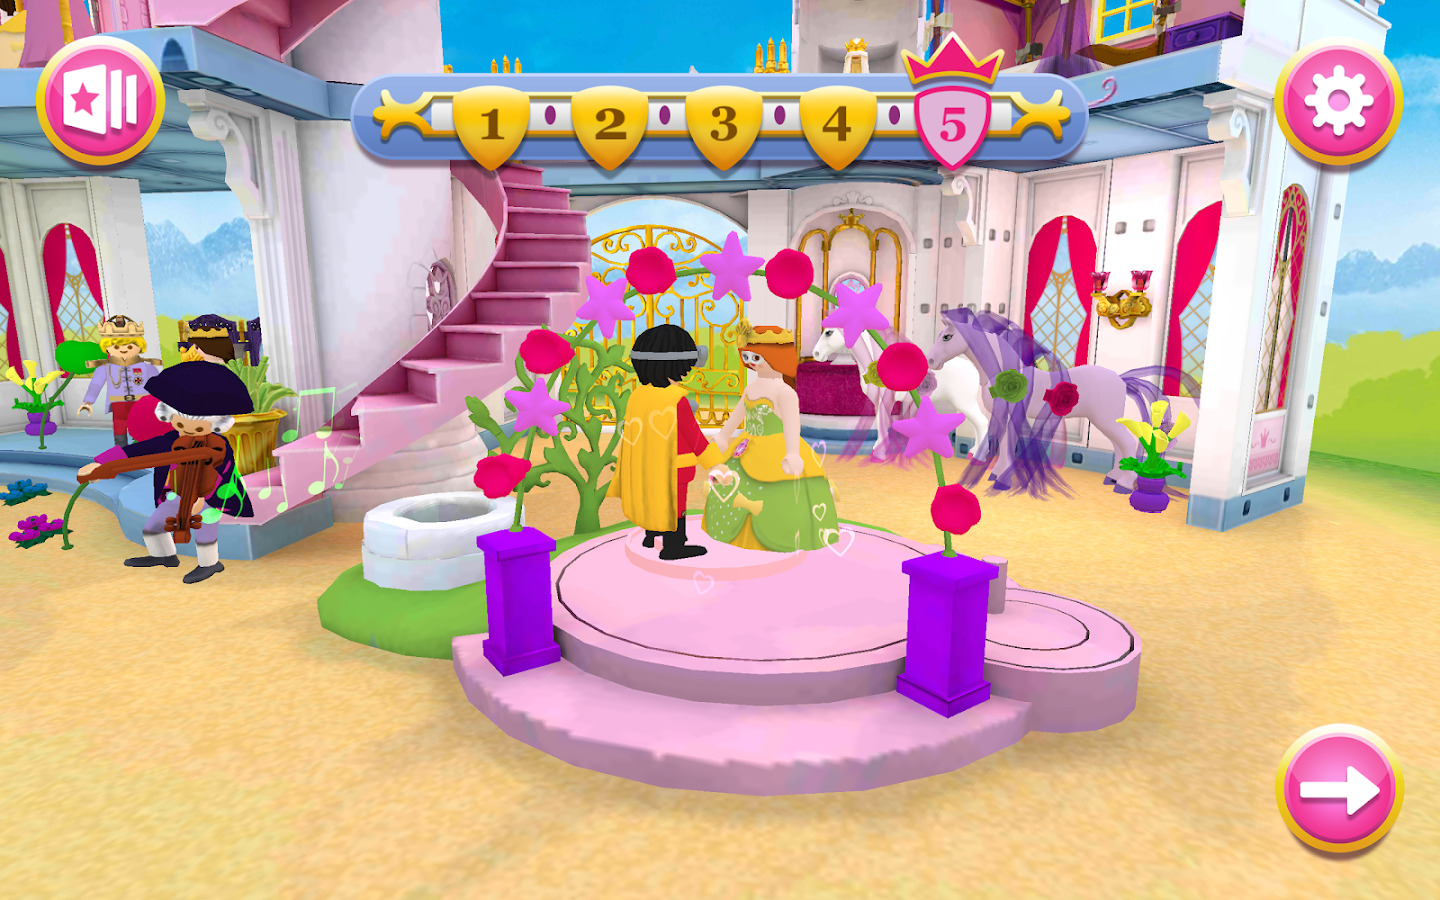 PLAYMOBIL Princess Castle  Android Apps on Google Play